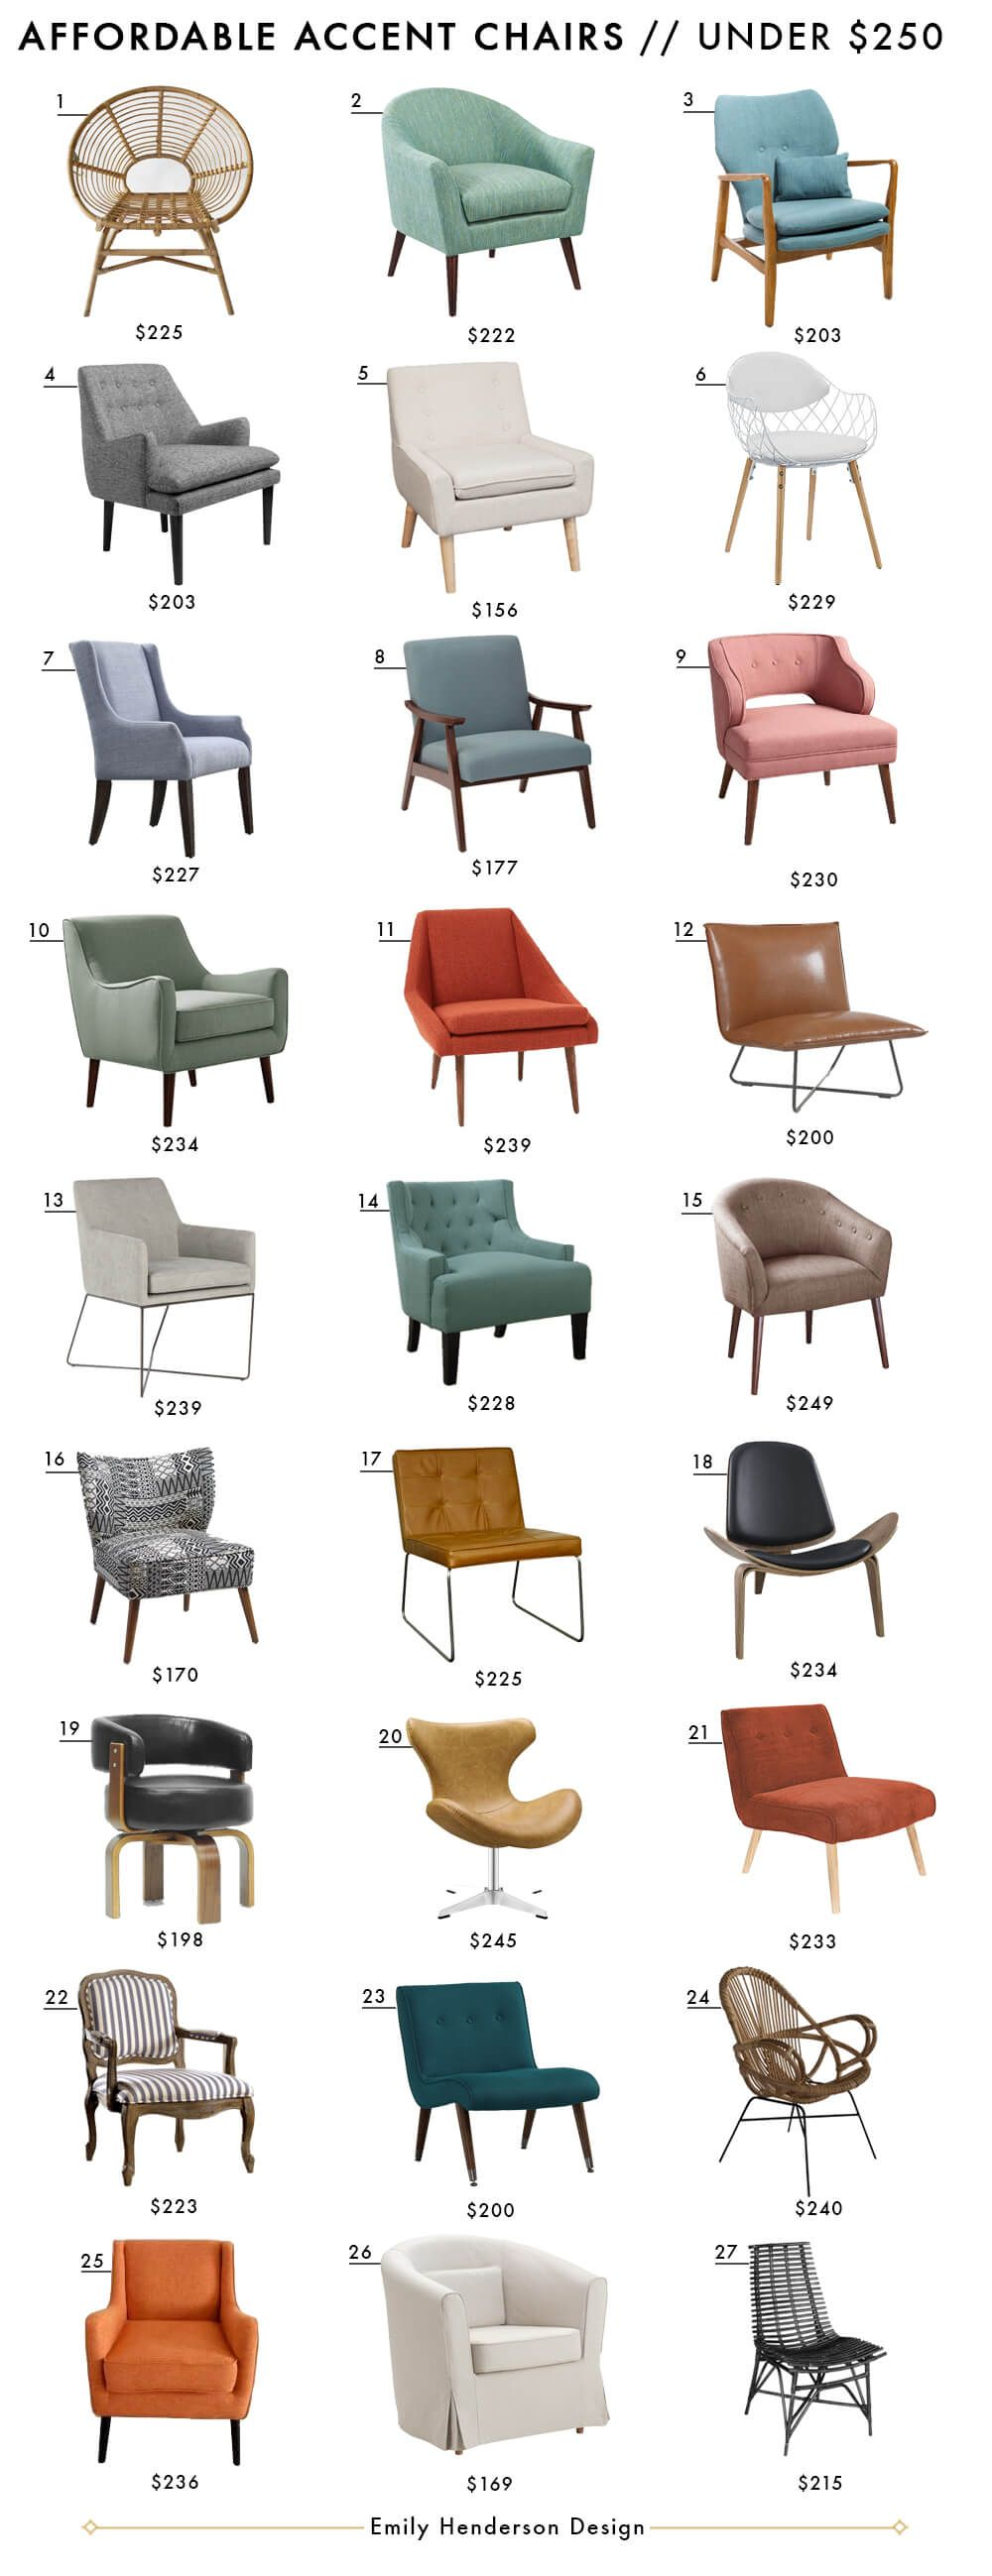 Affordable Accent Chair Roundup Interior Decorating Living Room